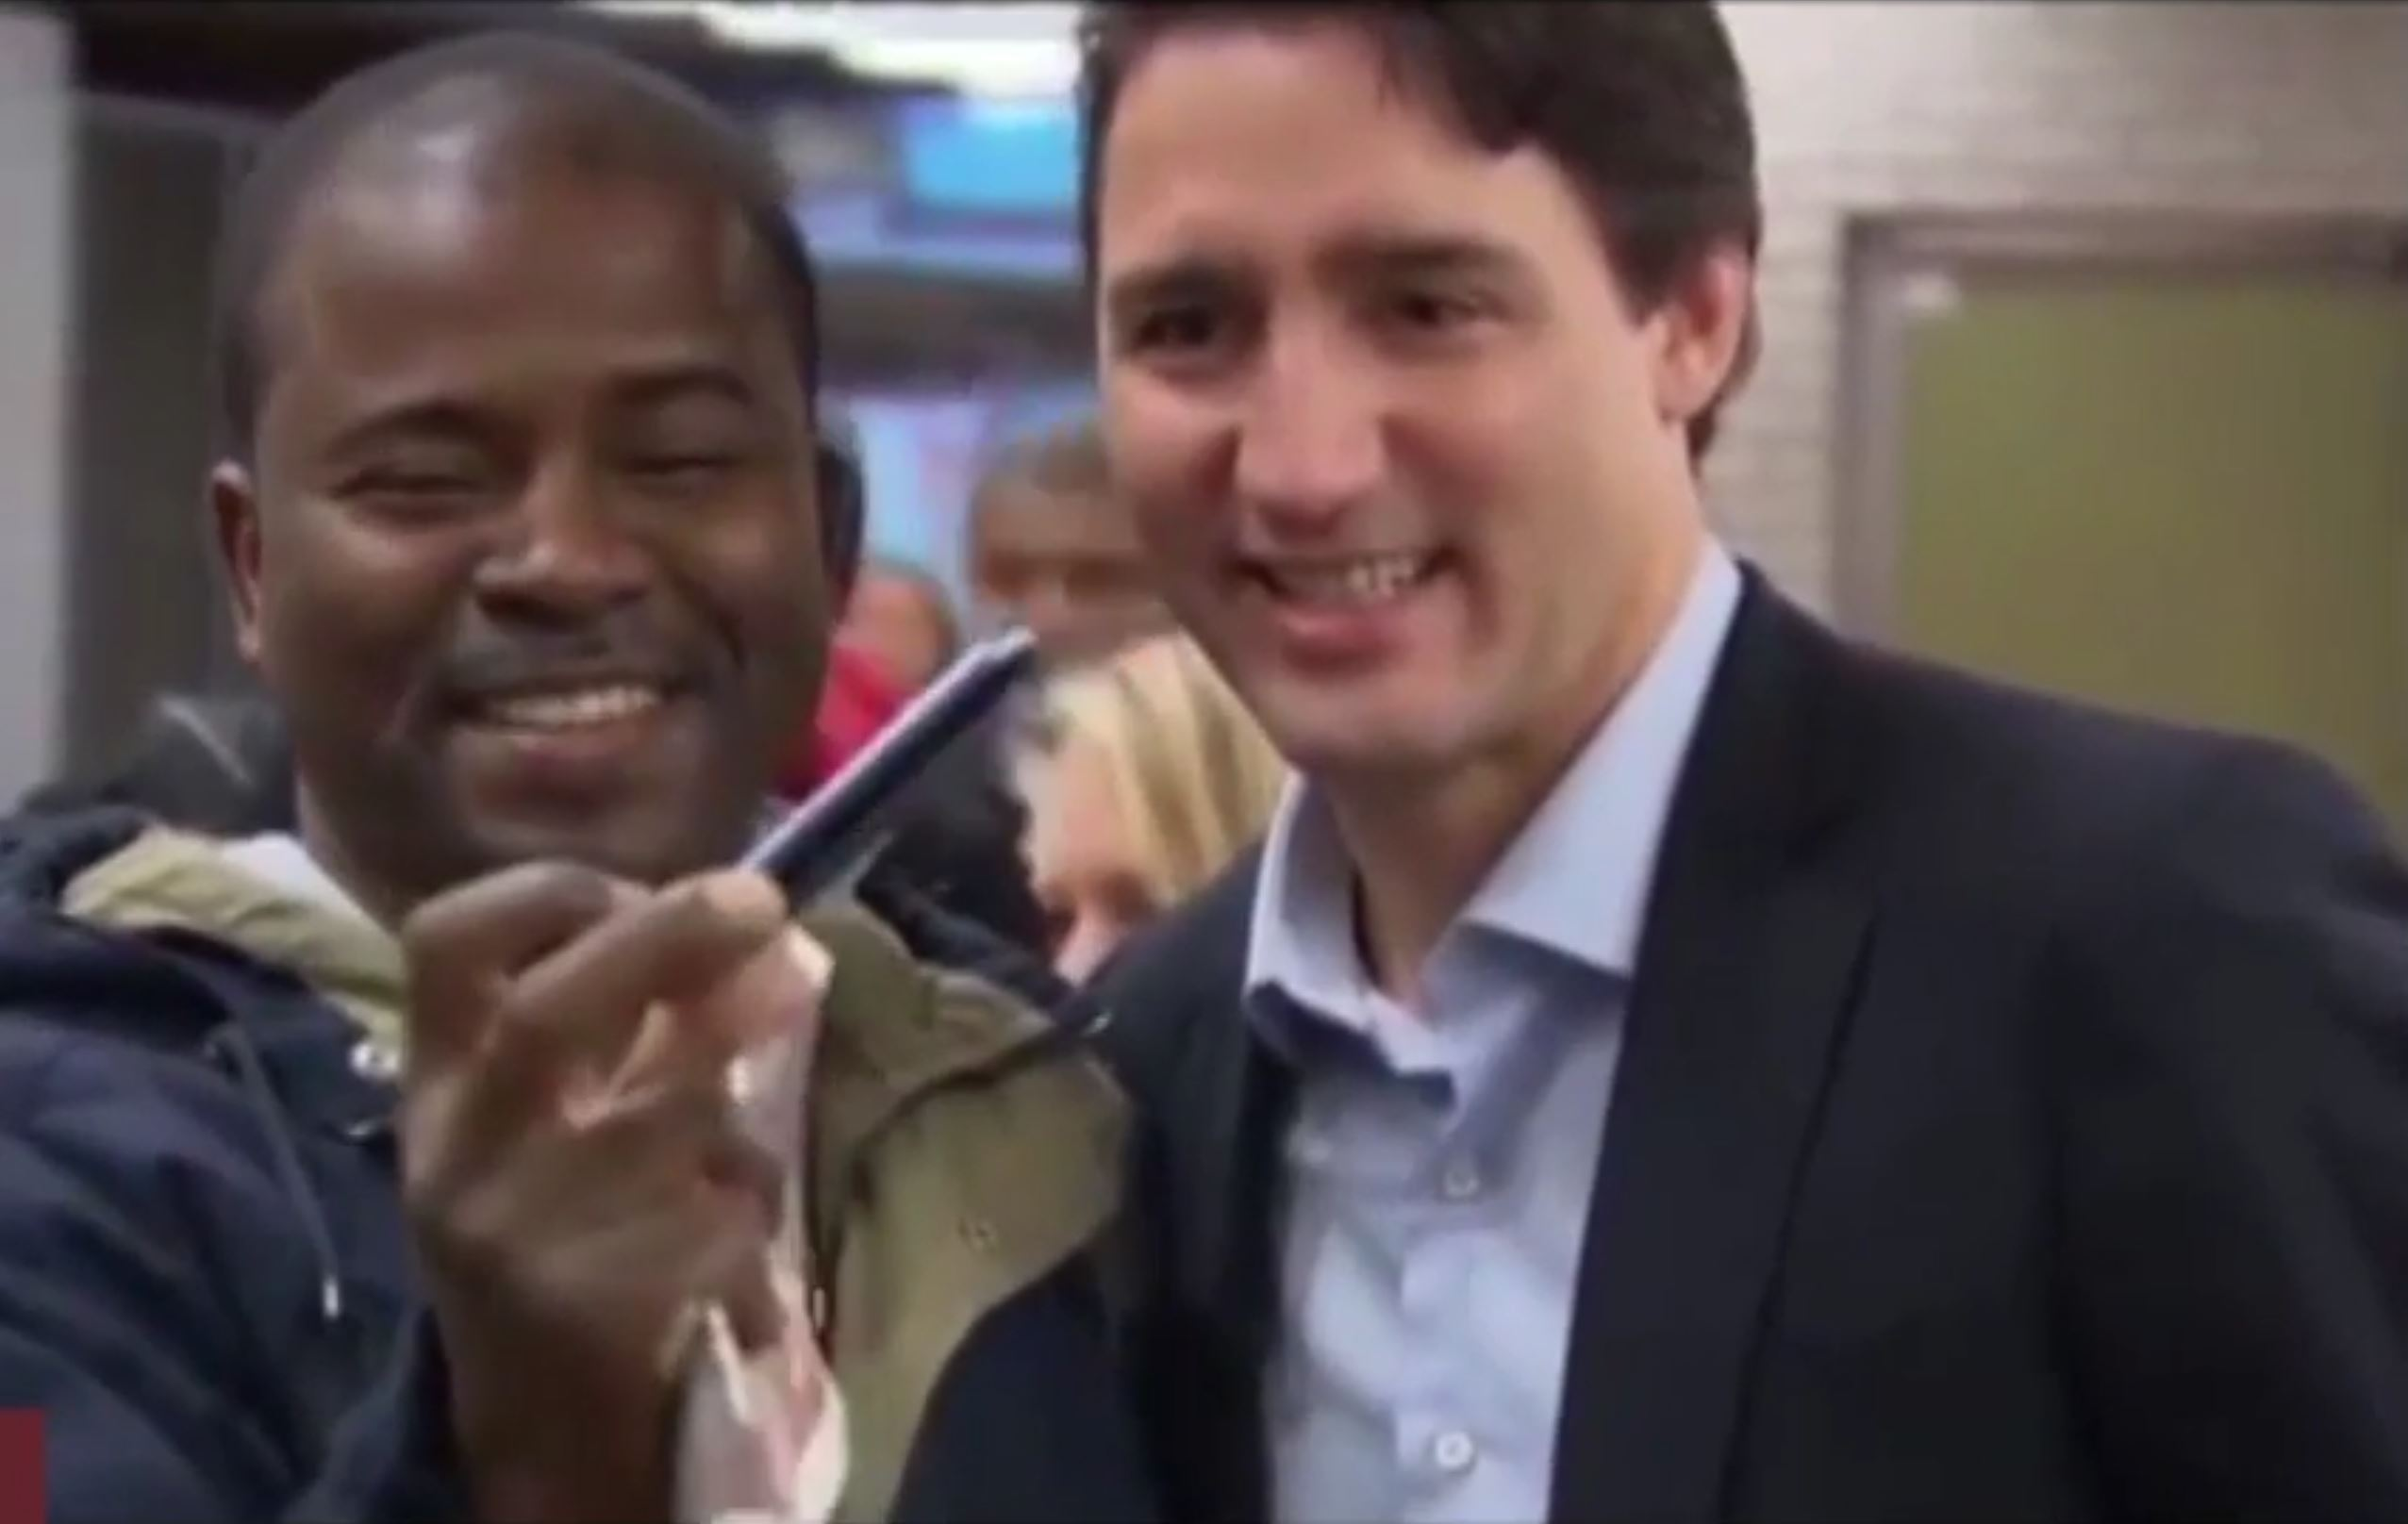 VIDEO: Justin Trudeau – A Year In Review